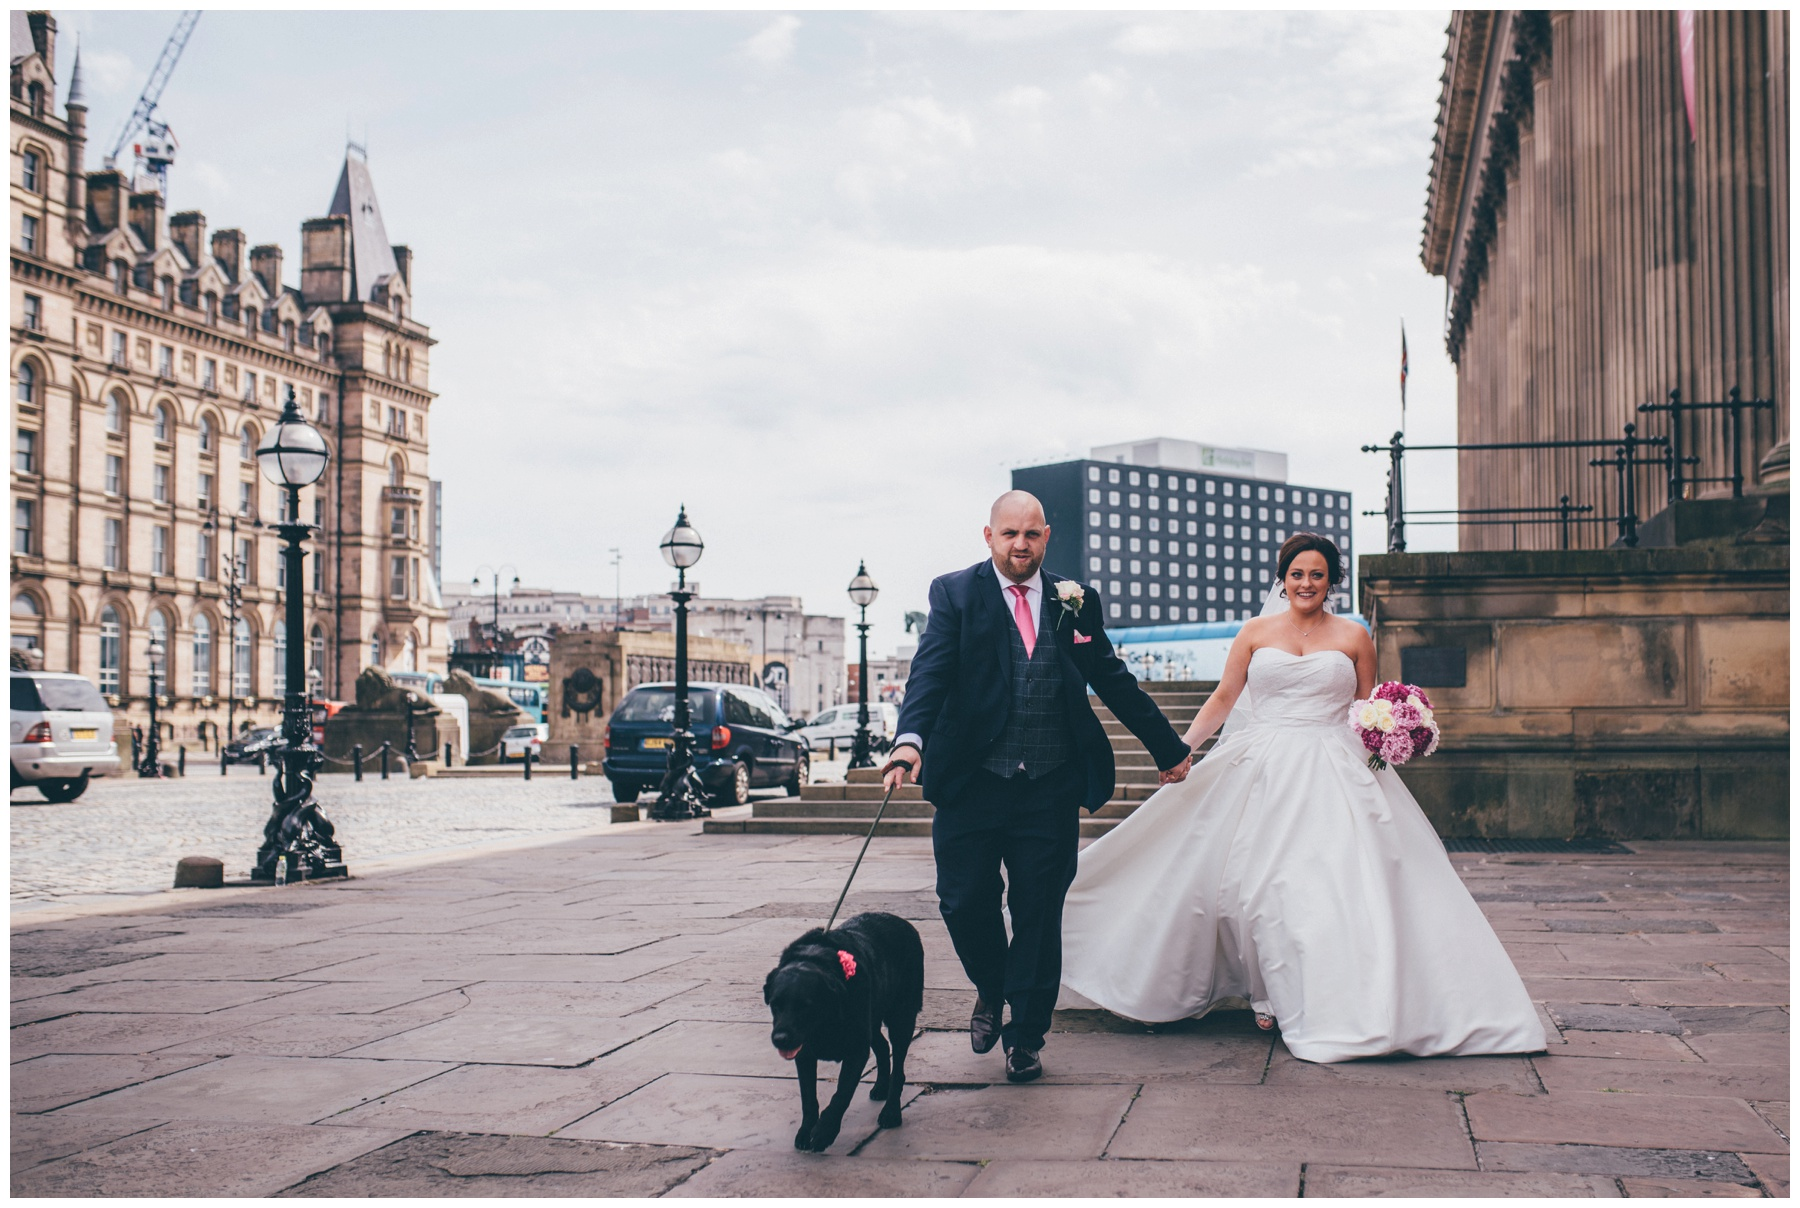 Bride and groom walk through Liverpool City Centre with their dog after their ceremony at St George's Hall.